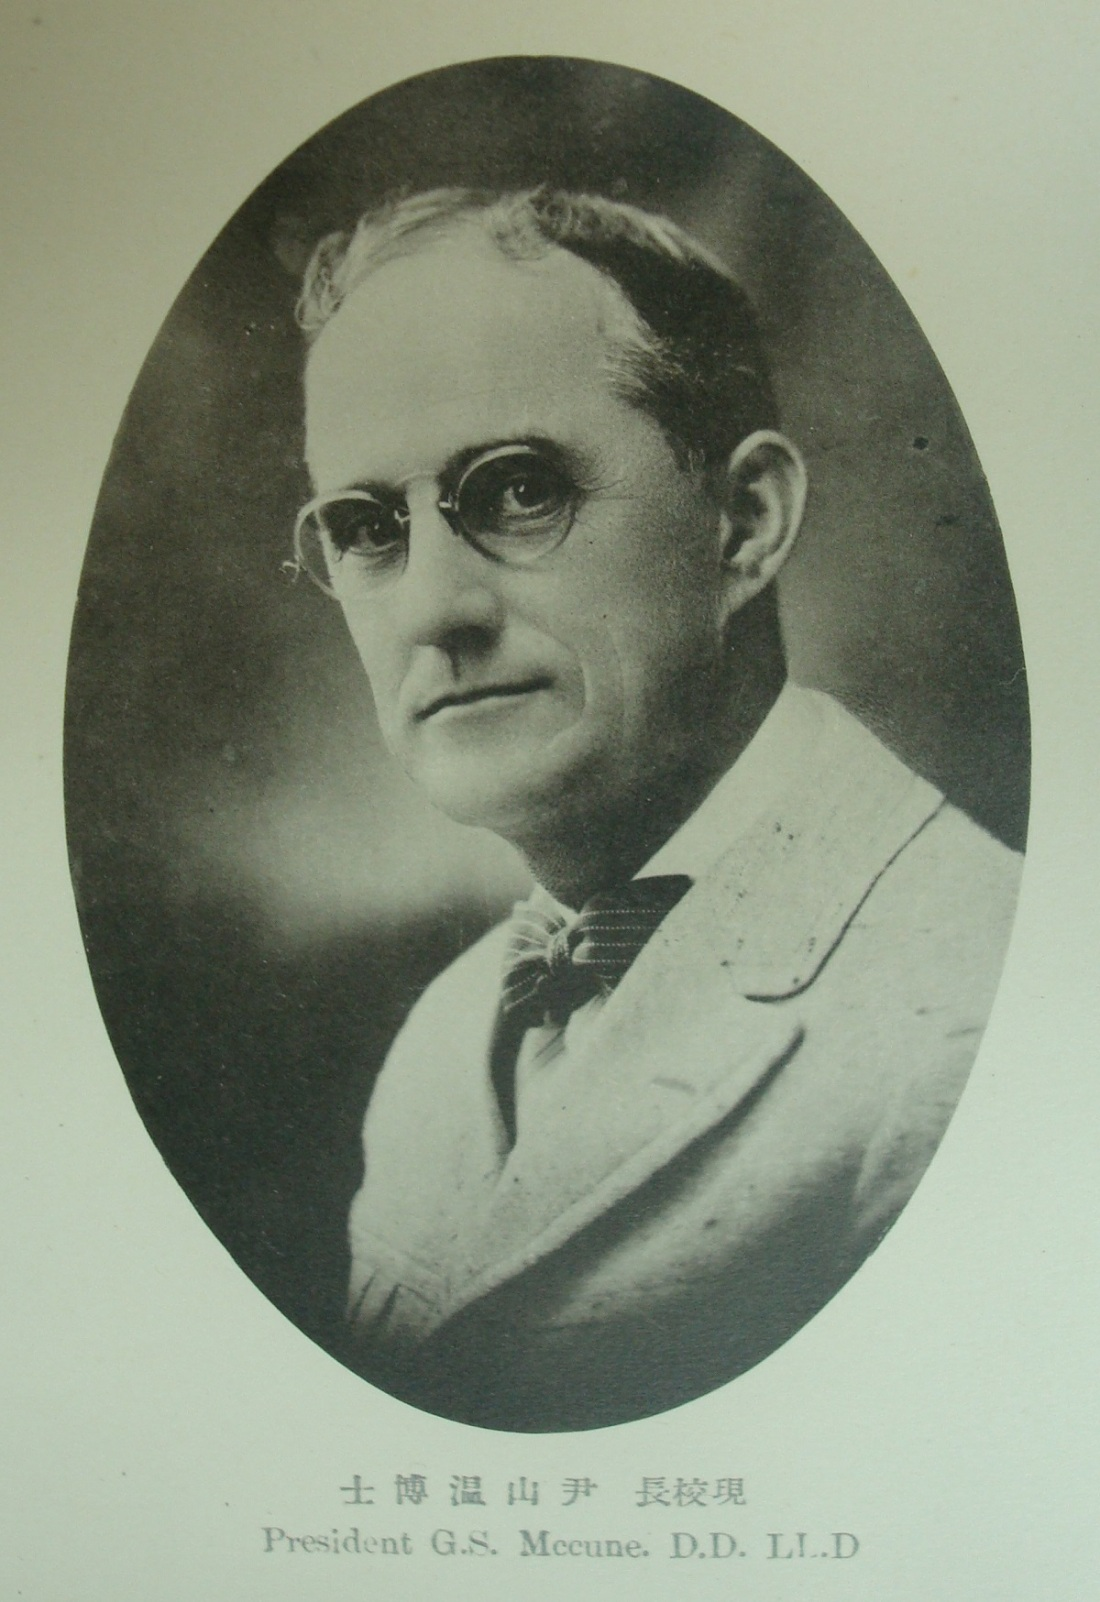 McCune 1932 Yearbook